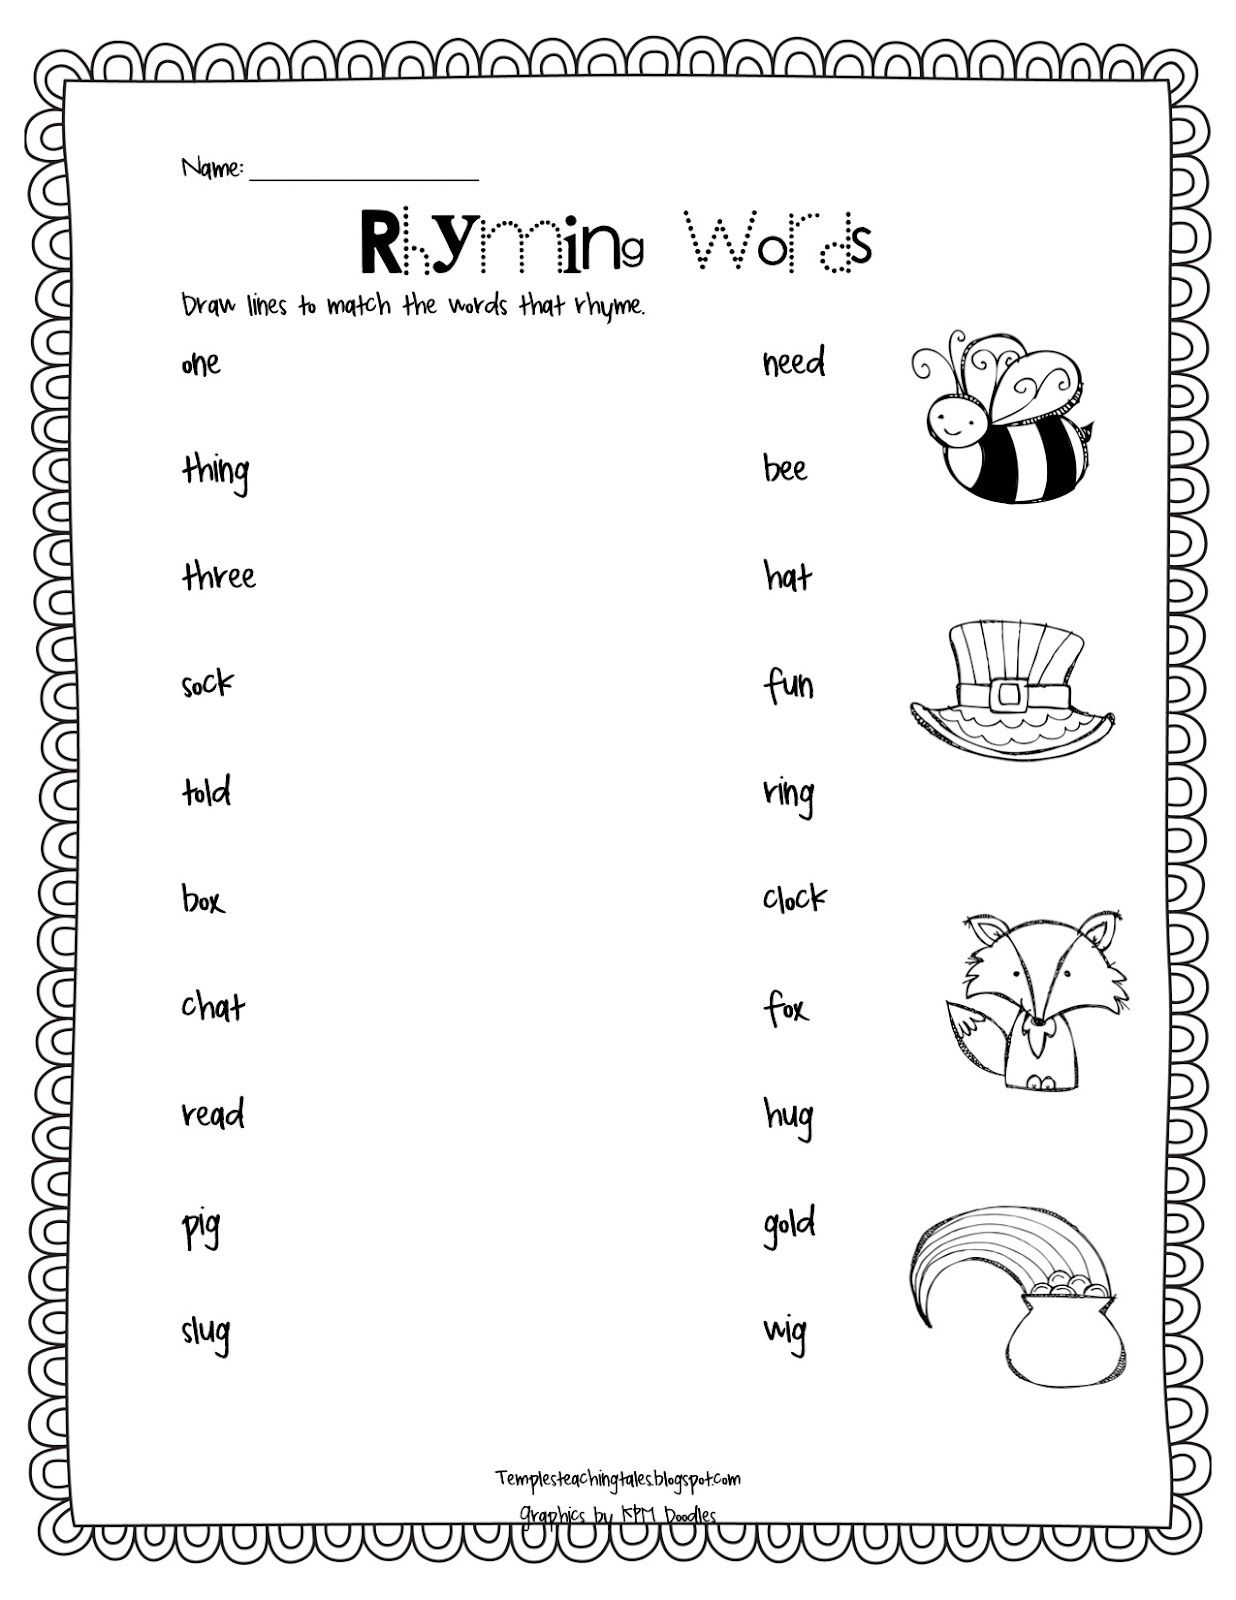 Worksheet Kindergarten Rhyming Words 1000 images about rhyming words on pinterest therapy trees and activities